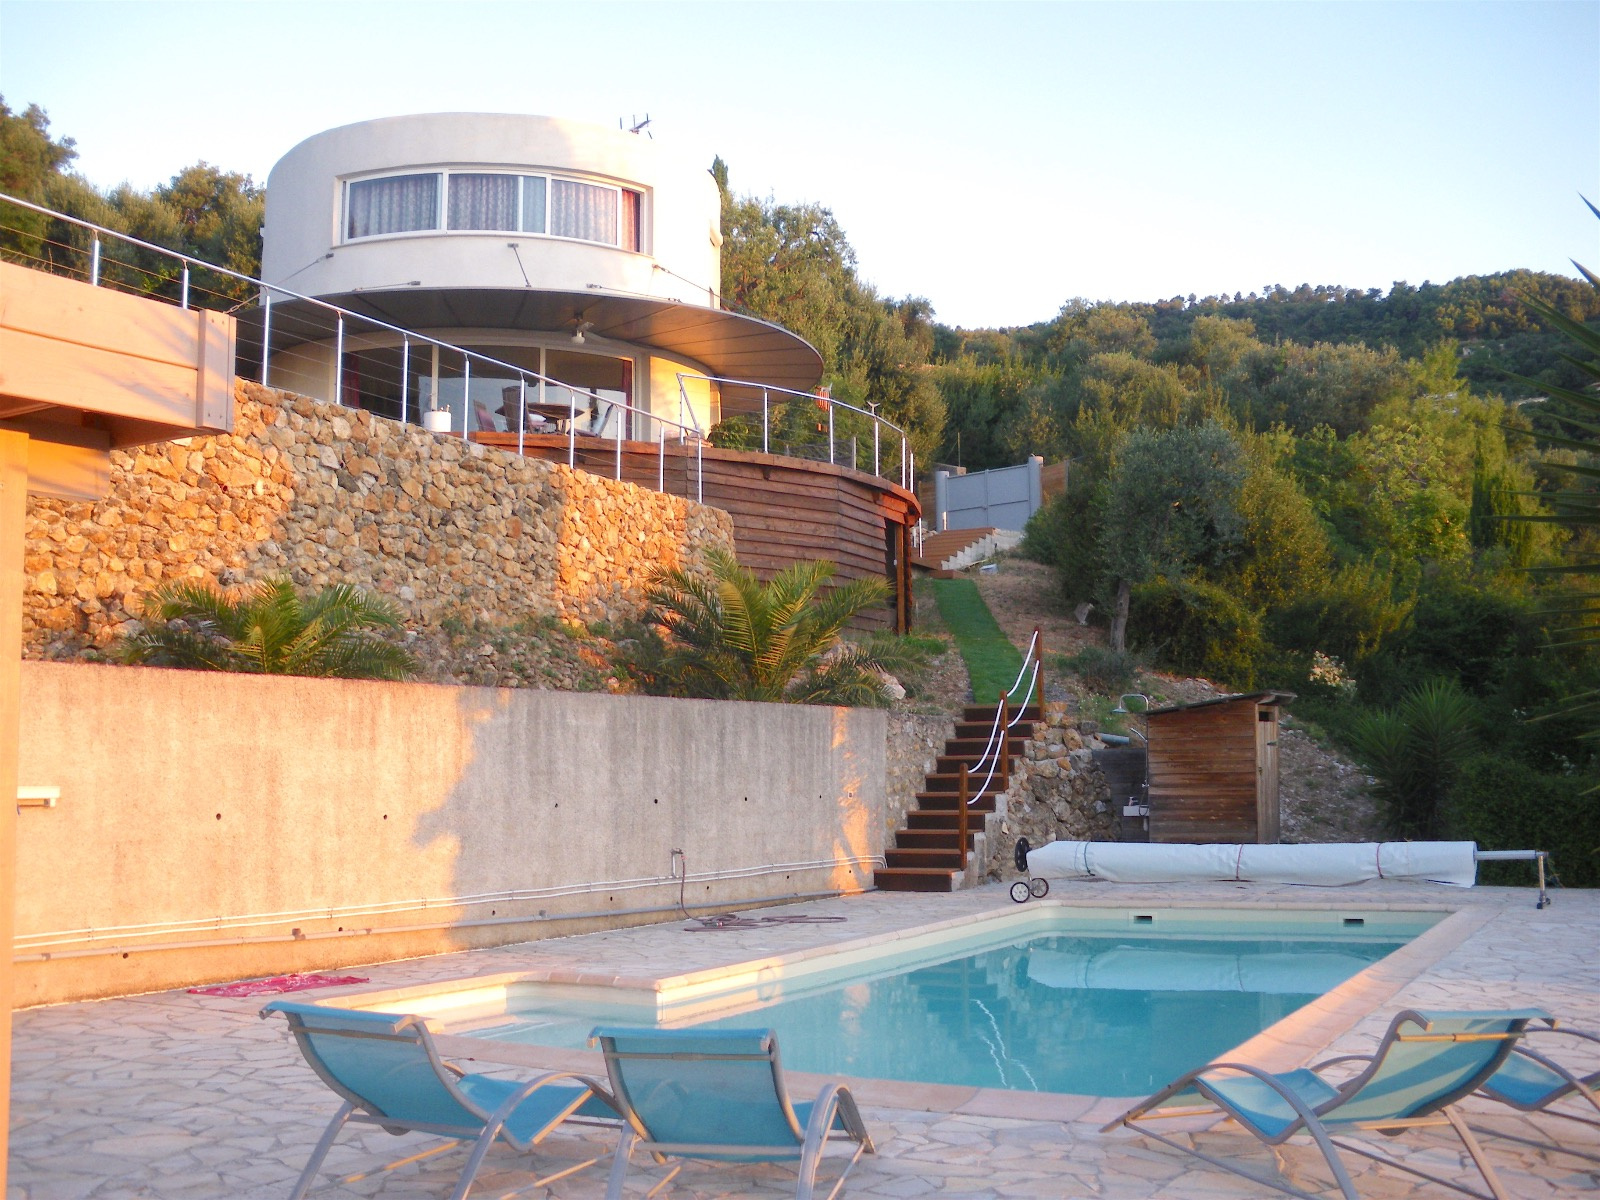 Vente roquebrune cap martin maison de type 4 pieces avec for Piscine 06190